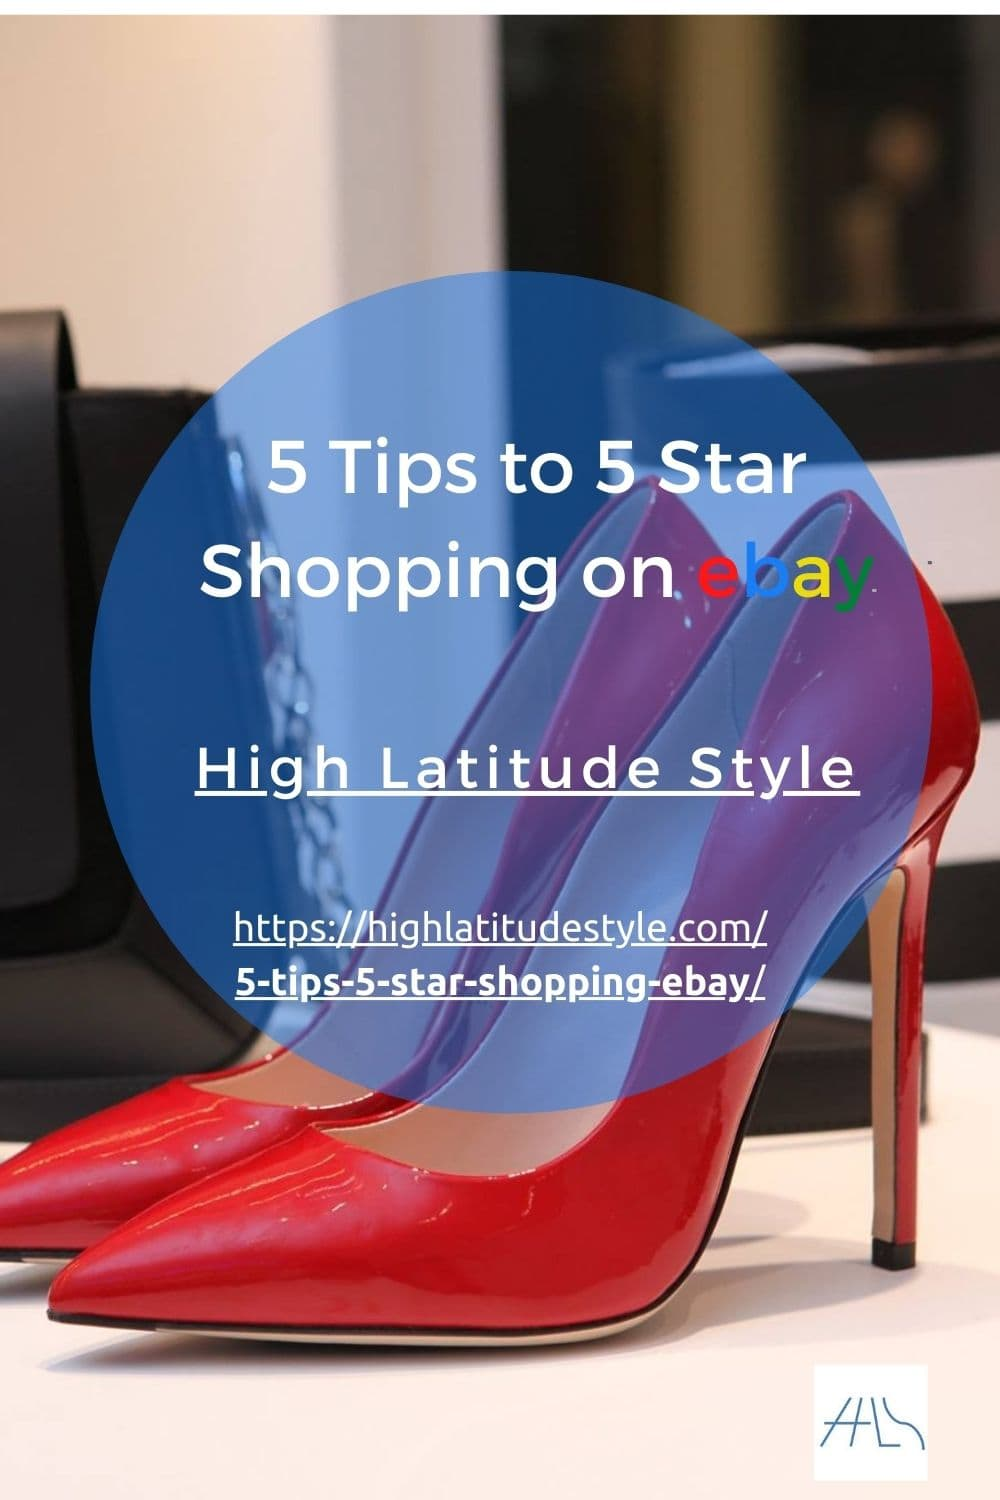 You are currently viewing 5 Tips to 5 Star Shopping on eBay